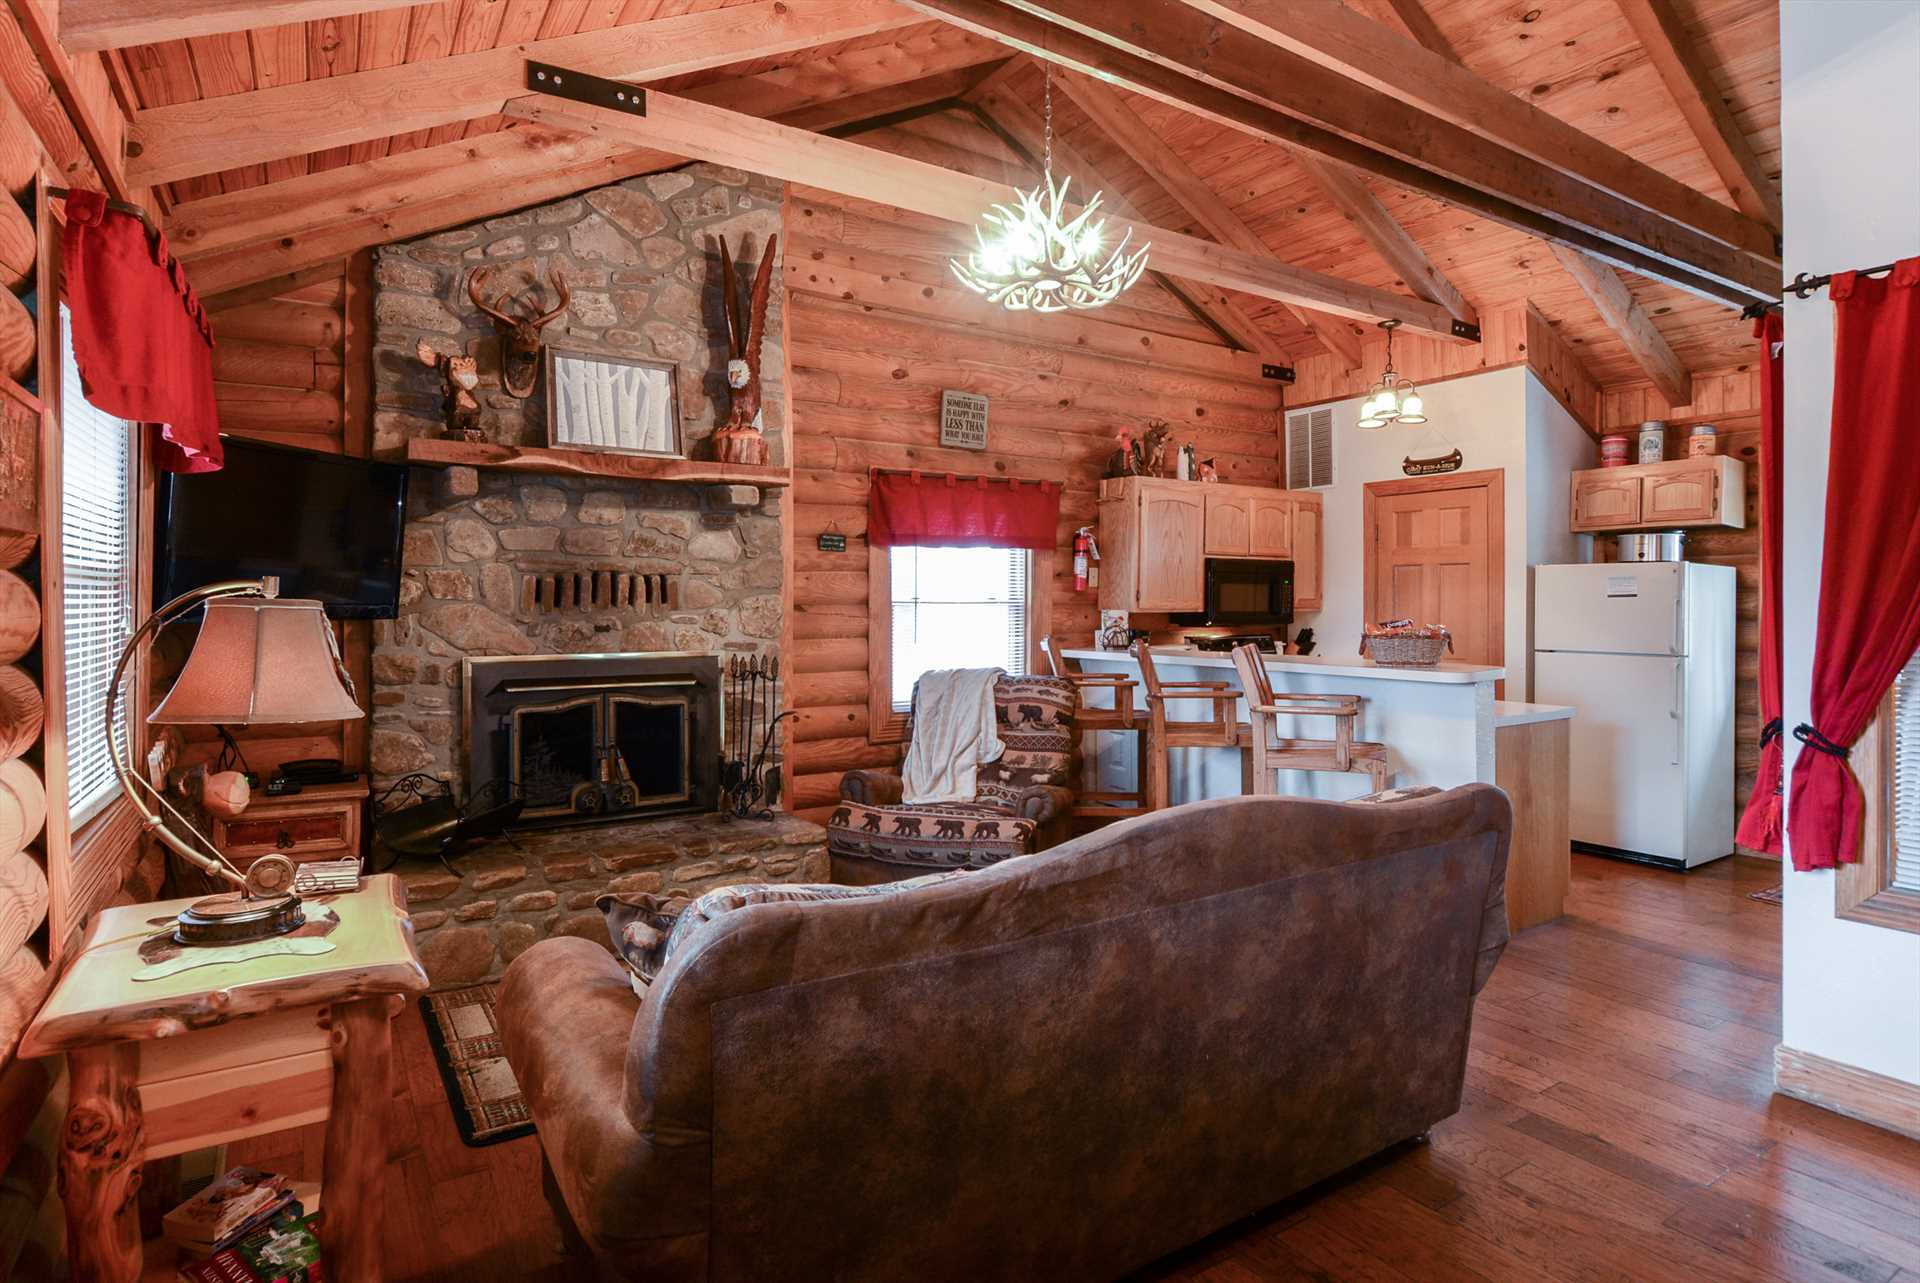 No log cabin is complete without exposed wooden beams.